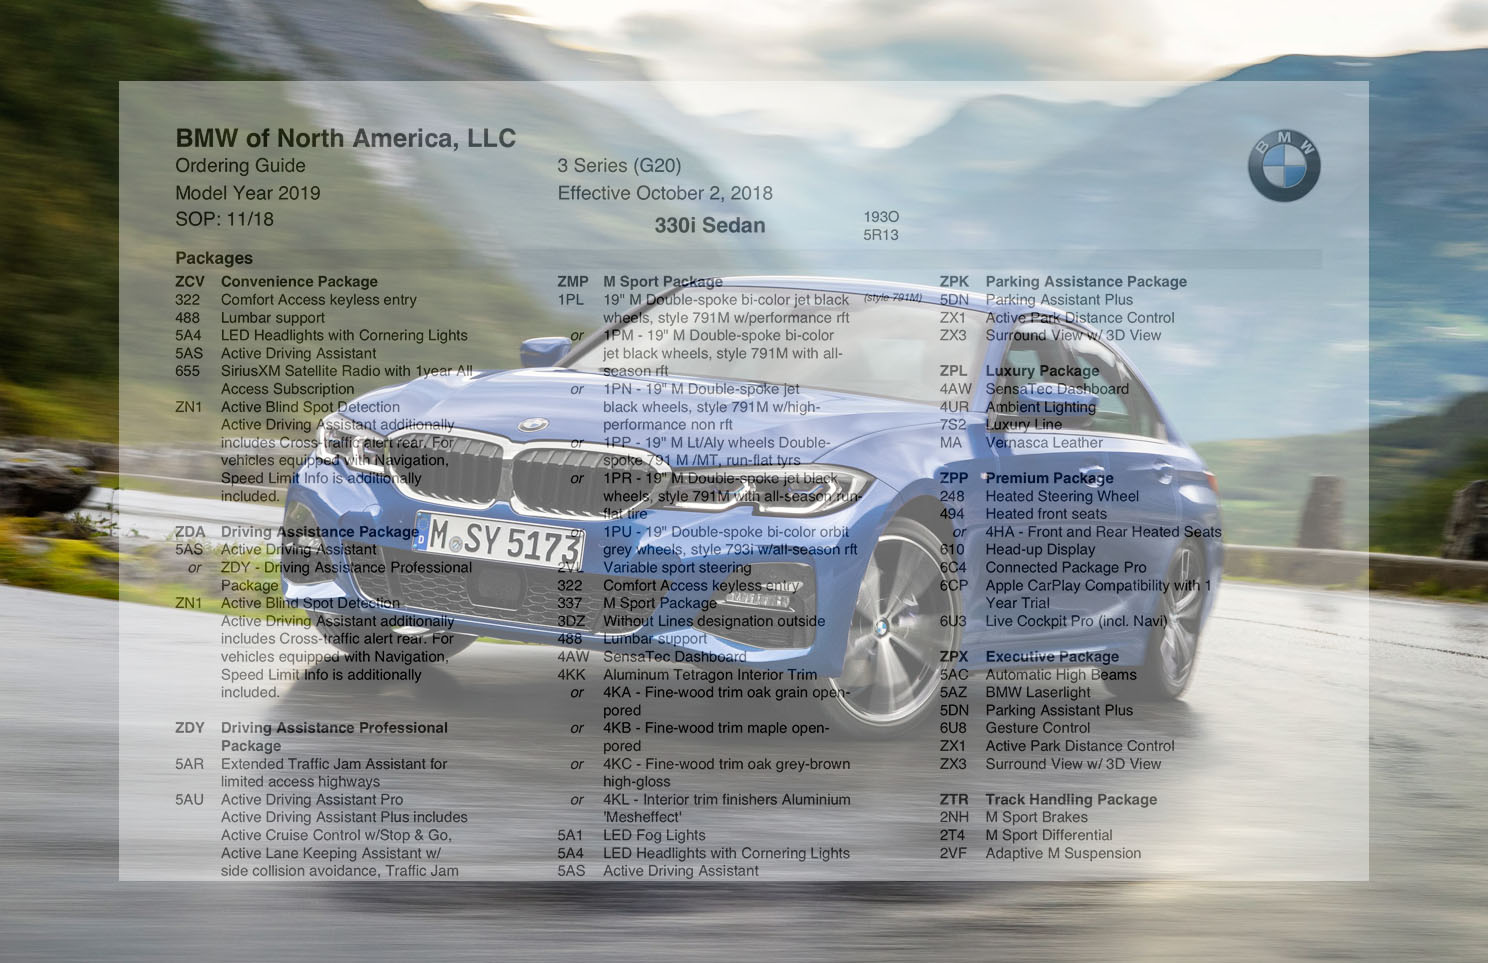 2019 2020 Bmw 330i And 330i Xdrive Pricing Guide And Ordering Guide Page 6